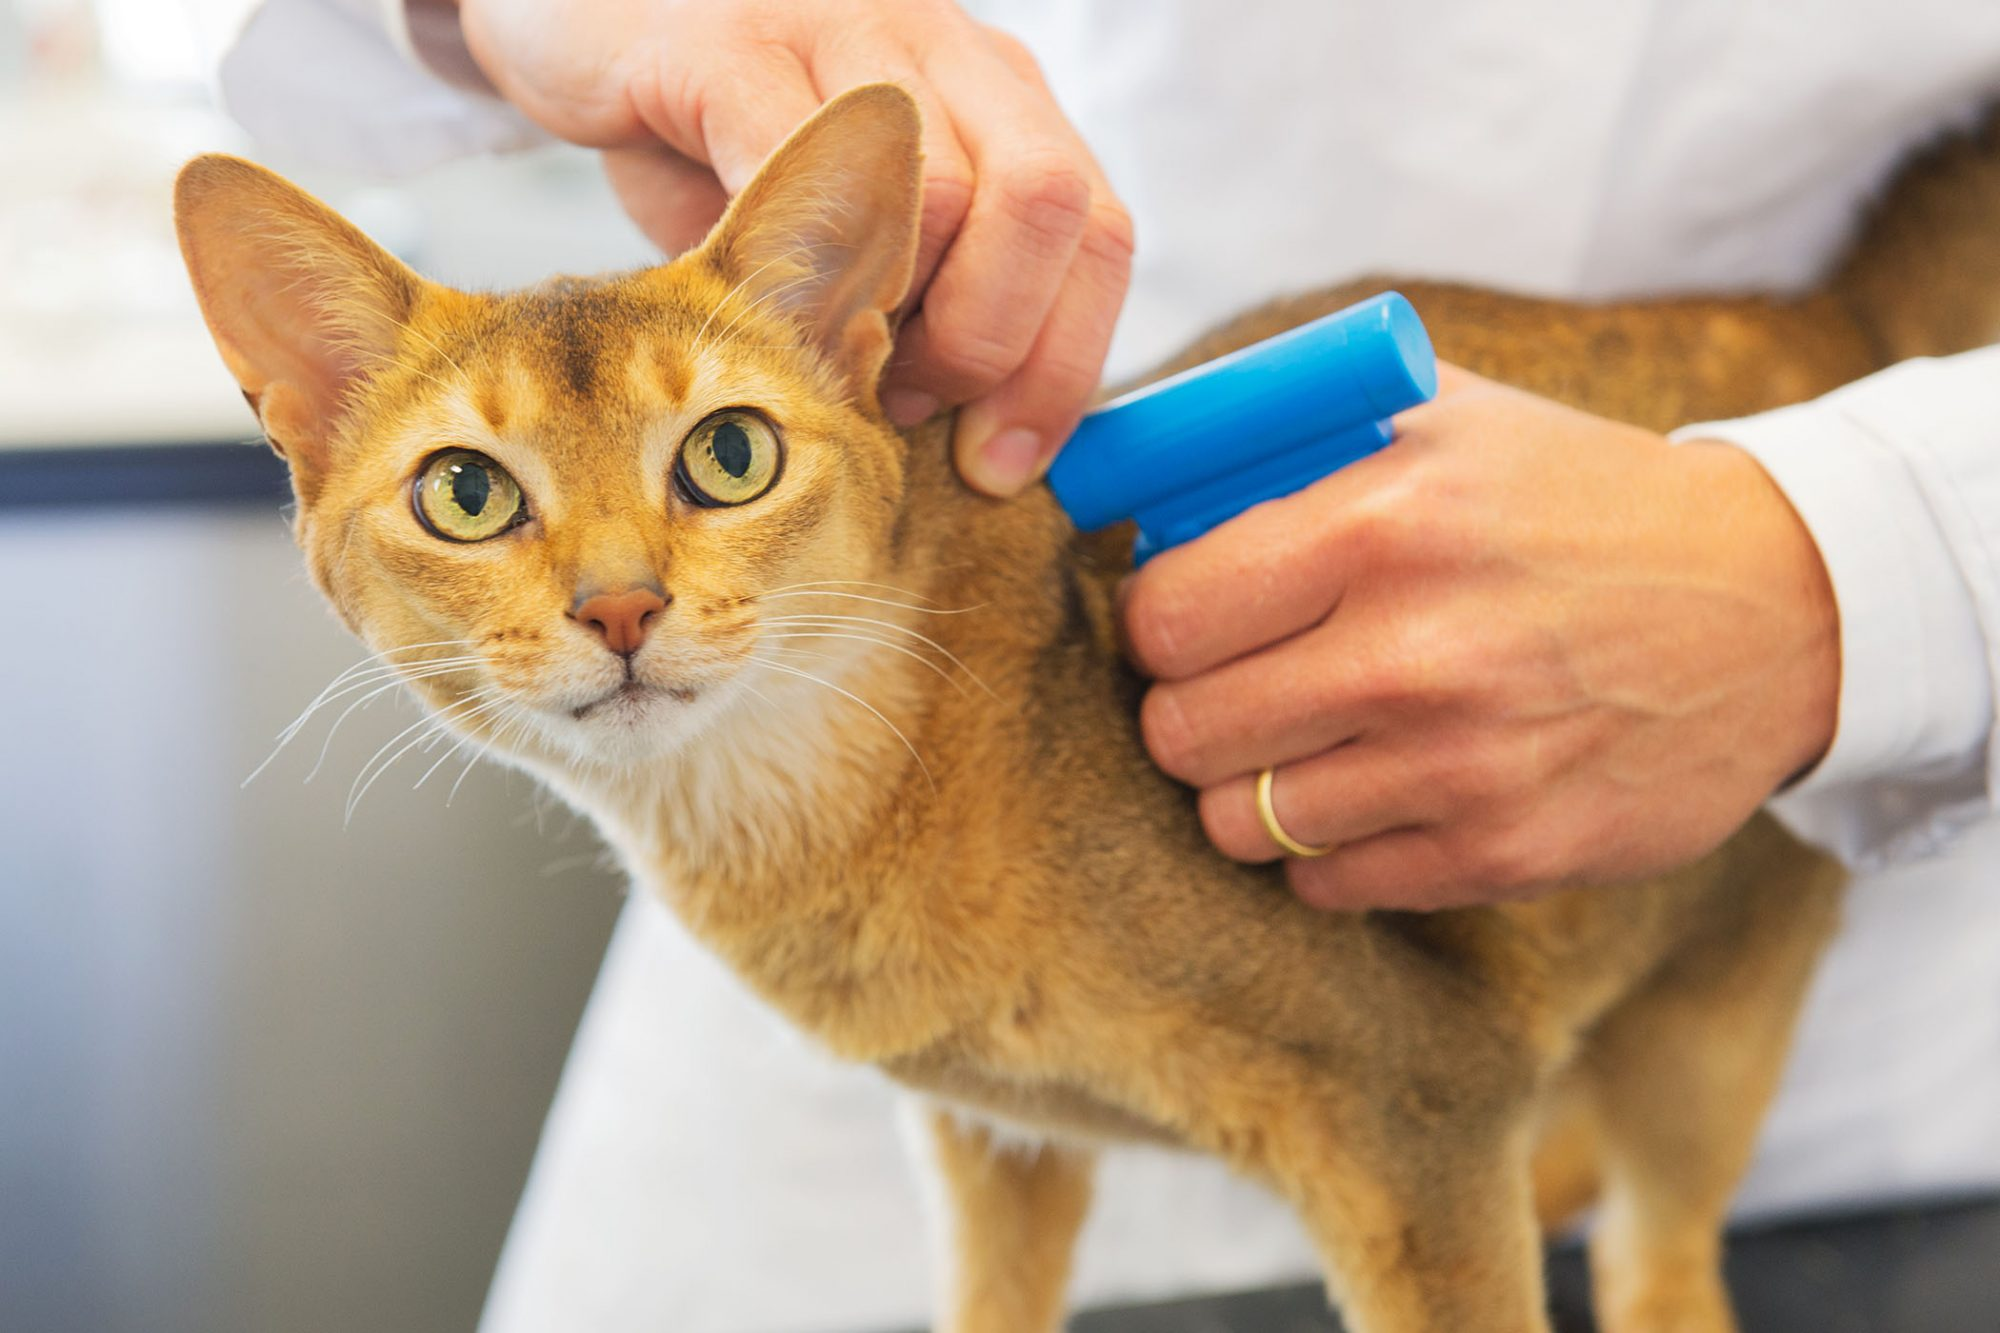 veterinarian microchipping cat